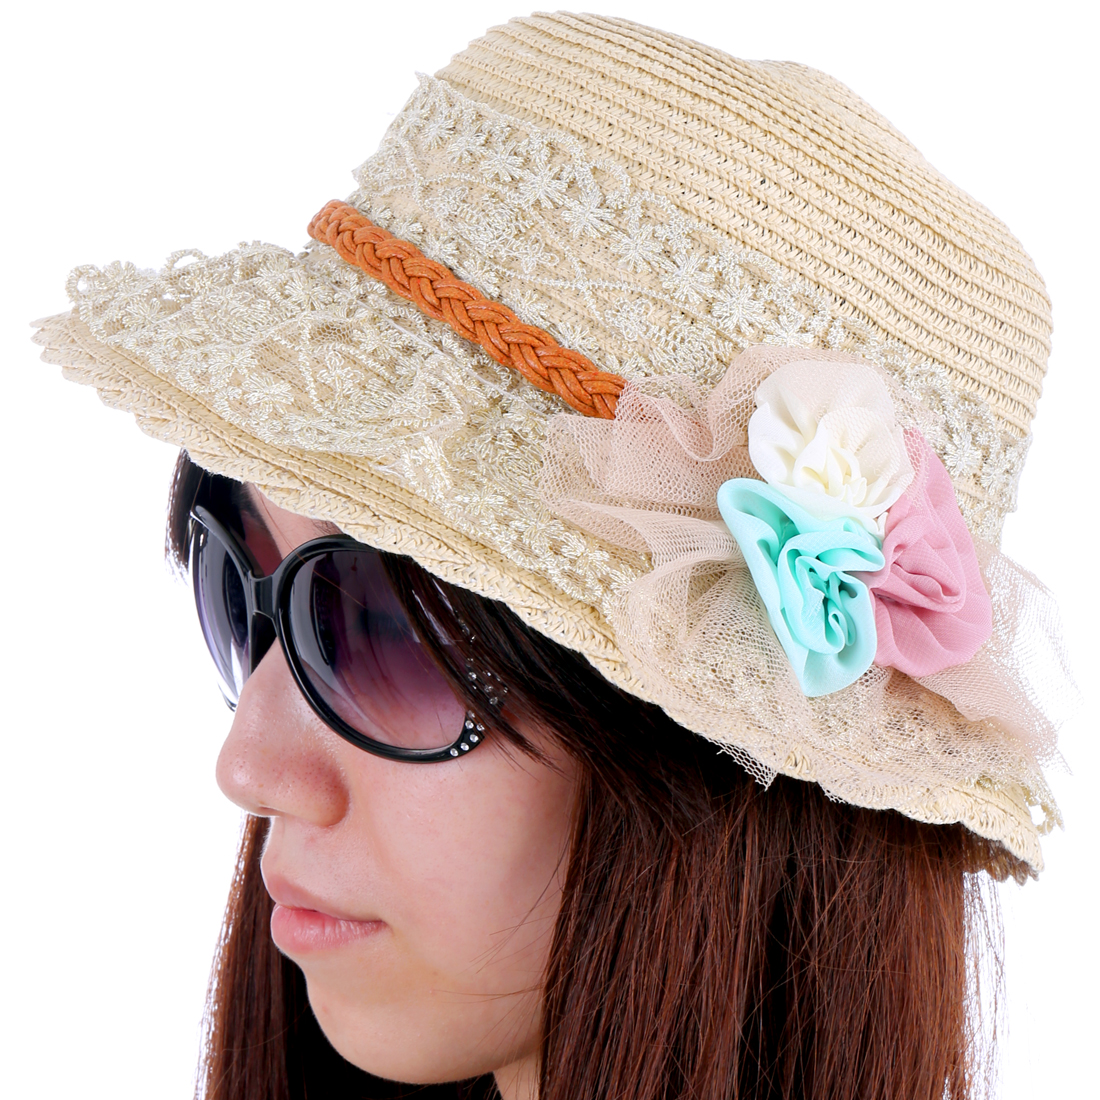 Woman Chic Lace Covered Handmade Flower Embellished Beige Sun Hat